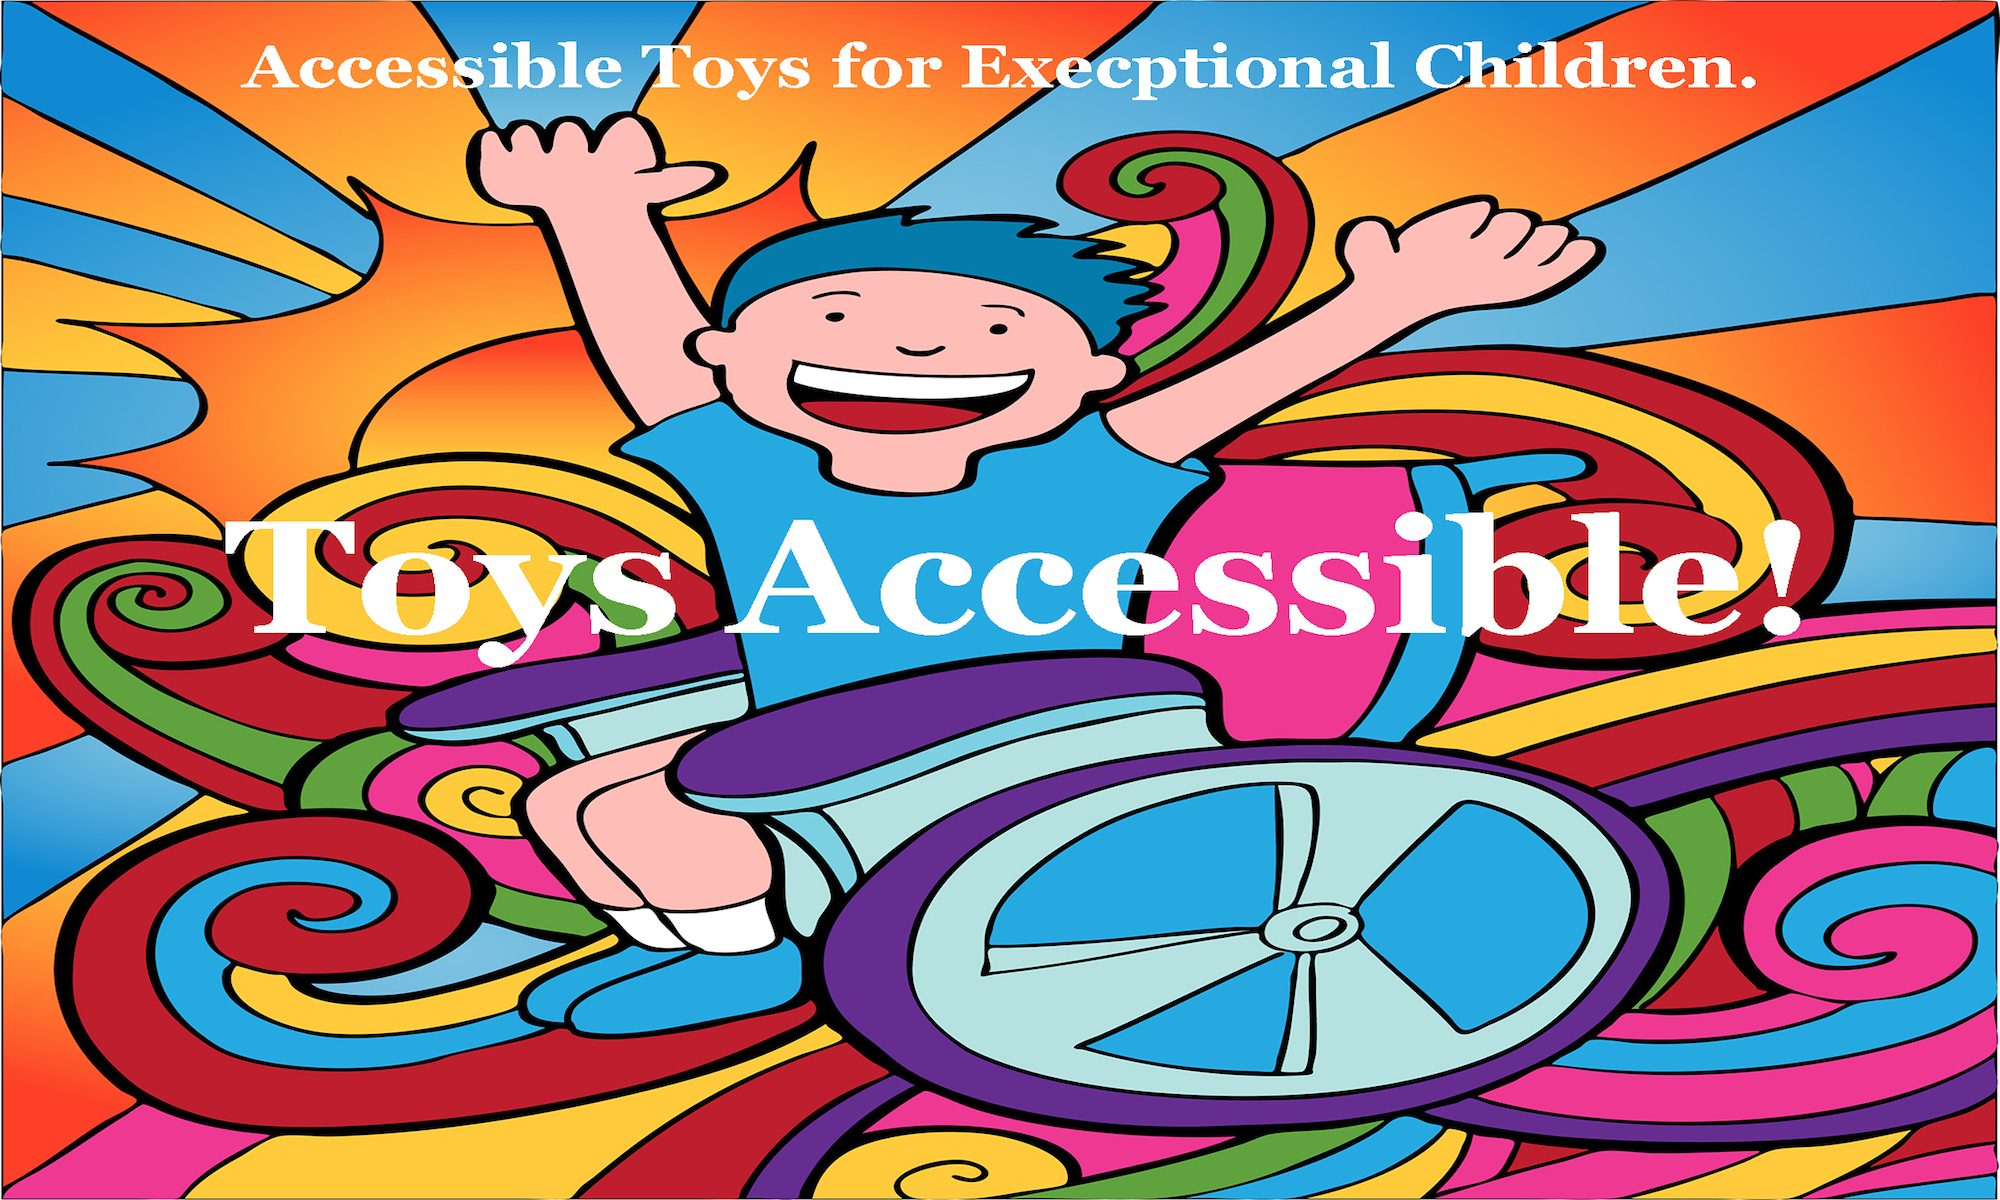 Toys Accessible